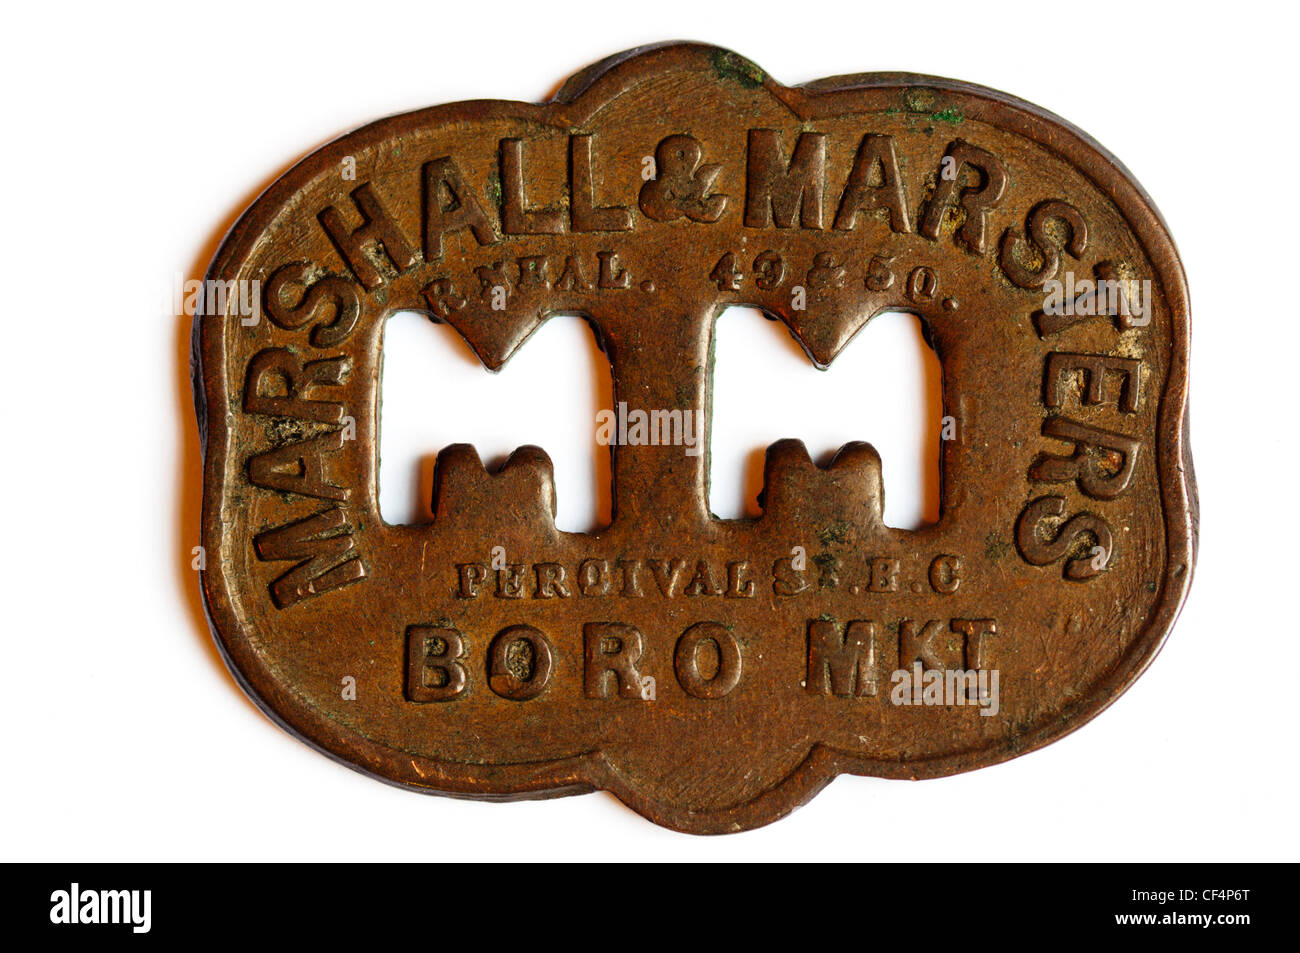 A market token, used by Marshall & Marsters of Borough Market.  SEE DESCRIPTION FOR DETAILS. - Stock Image